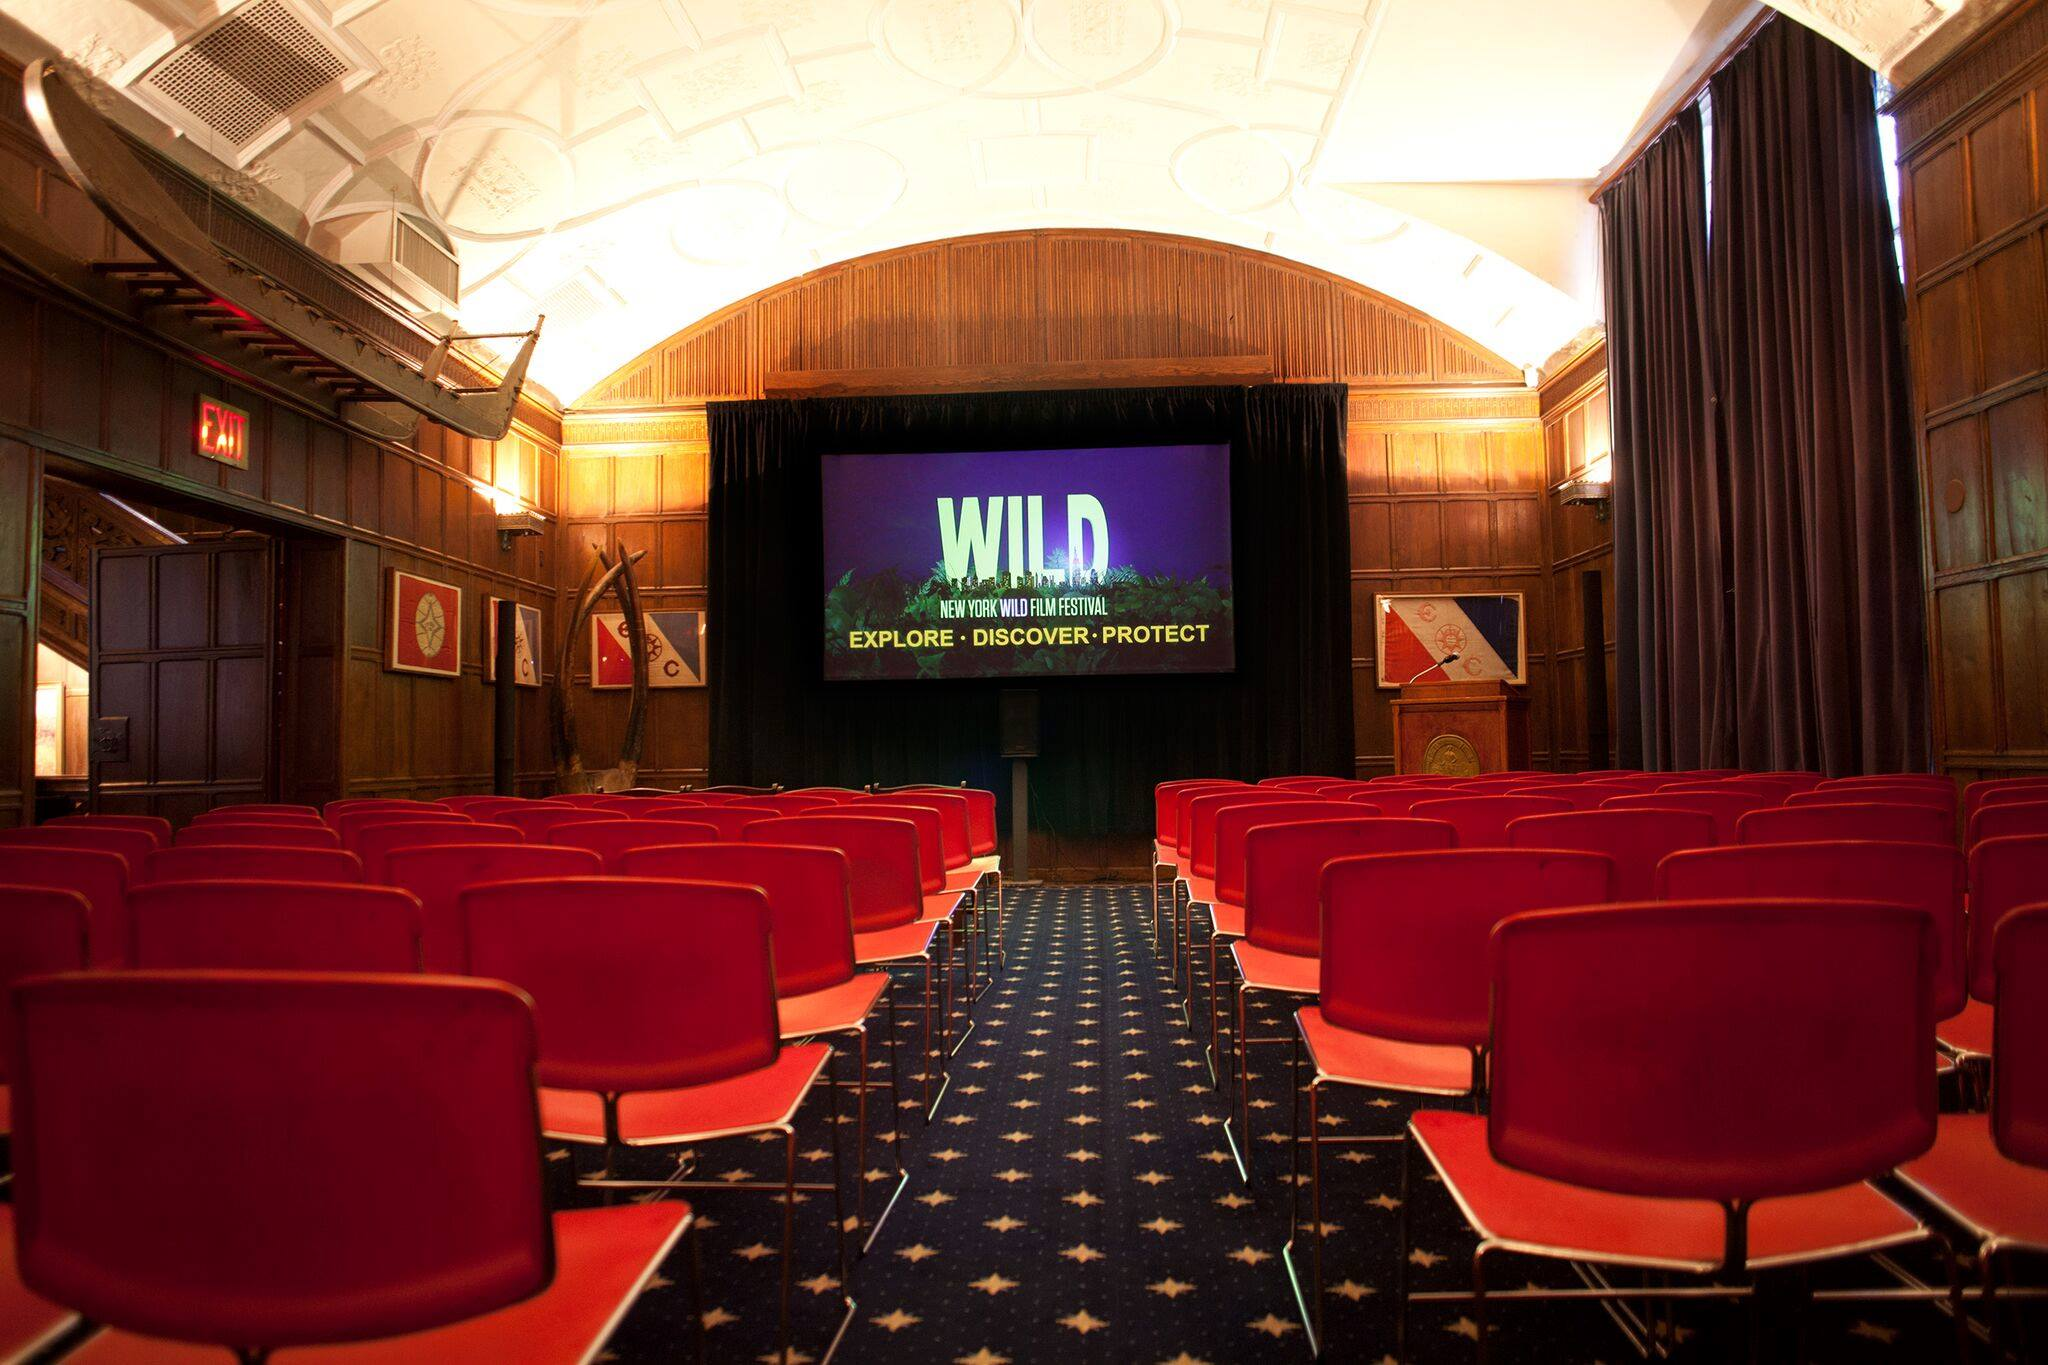 COULD THERE BE A MORE APPROPRIATE PLACE THAN THE EXPLORERS CLUB TO HOST THE NEW YORK WILD FILM FESTIVAL? FROM THE POLAR CAPS TO DEEP SPACE TO OCEAN'S CANYONS, AN EXPLORERS CLUB FLAG HAS BEEN THERE. THIS IS WHERE DREAM BECOMES REALITY. IMAGE: THANKS TO THE NEW YORK WILD FIMS FESTIVAL